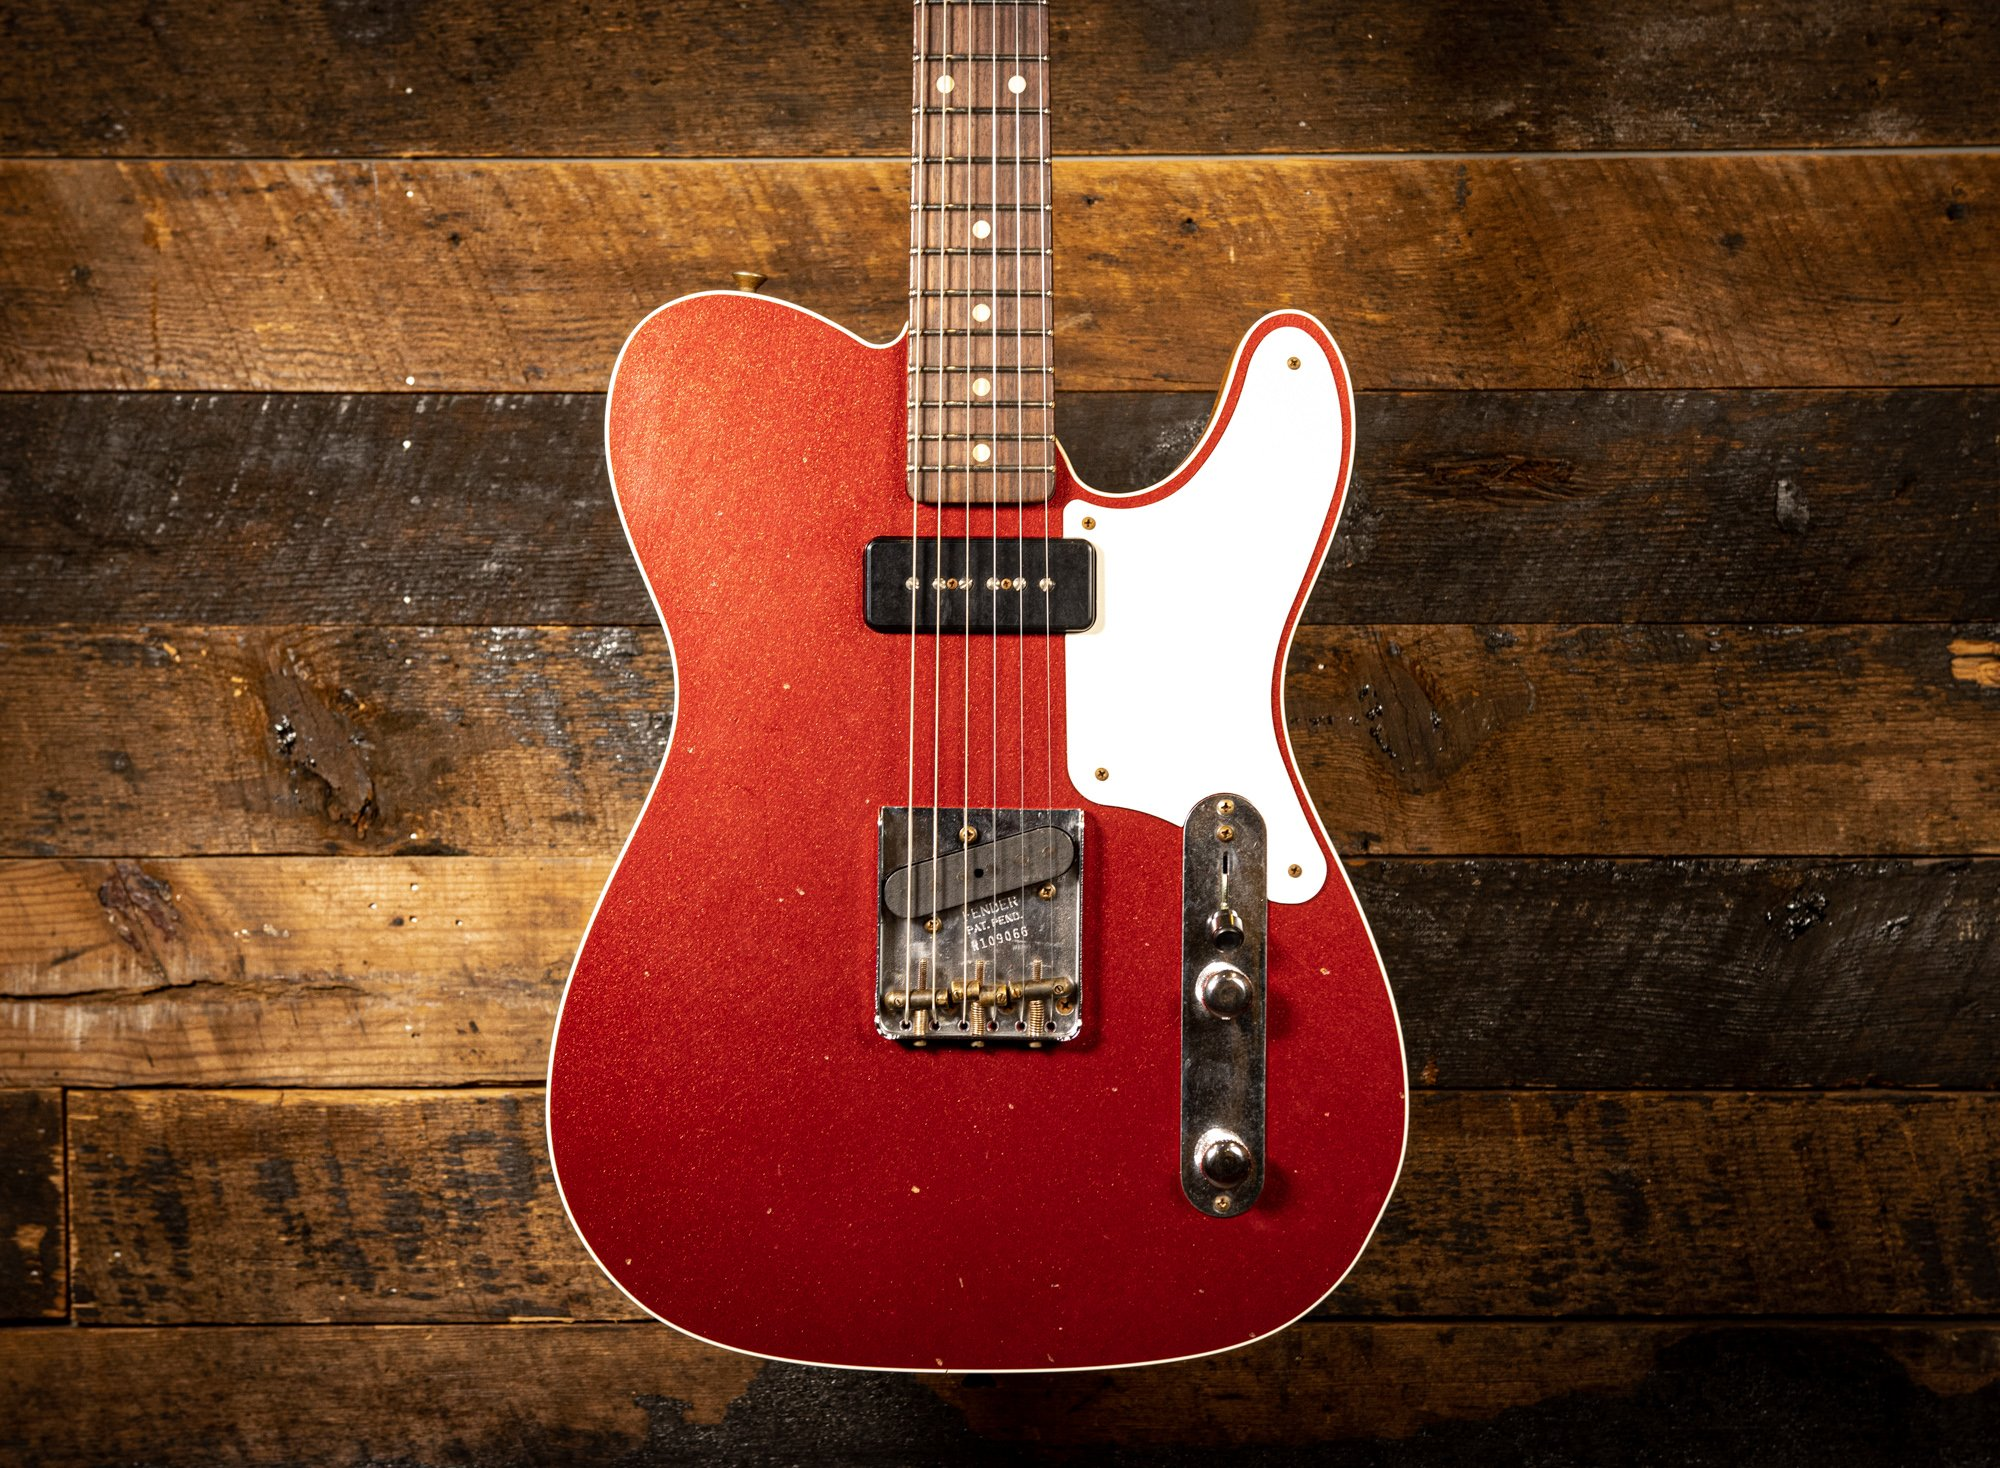 Fender Custom Shop 1963 P90 Mahogany Telecaster Journeyman relic in Aged Firemist Red Limited Edition